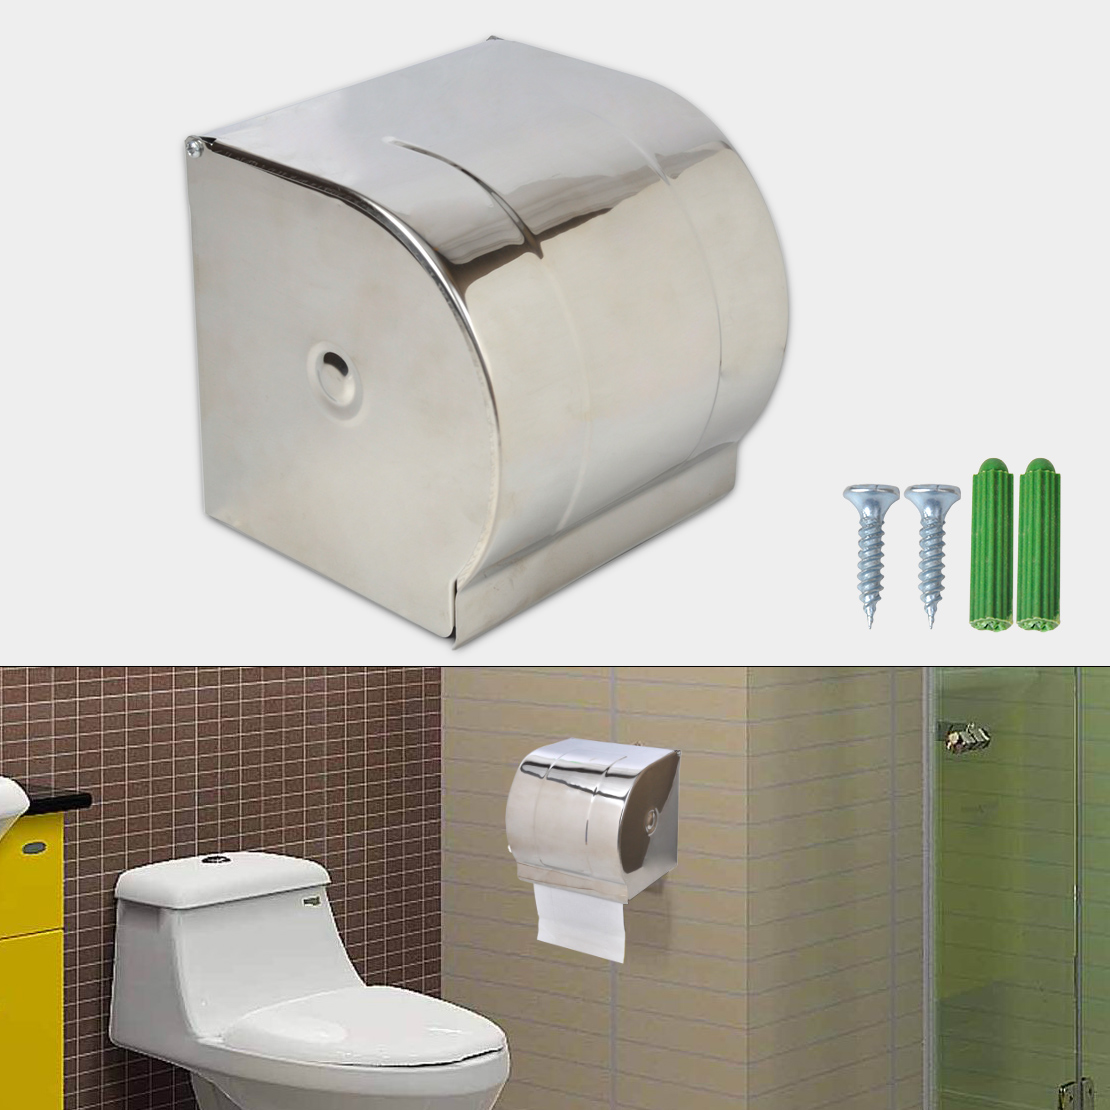 Amazing So The YAMAZAKI Bathroom Toilet Paper Holder Is Designed To Help Discreetly Hold The Essential Stuff Nearby Capable Of Holding Up To 12 Rolls Of Toilet Paper At Once, The YAMAZAKI Toilet Paper Stocker Enables A Fresh Roll Of Paper To